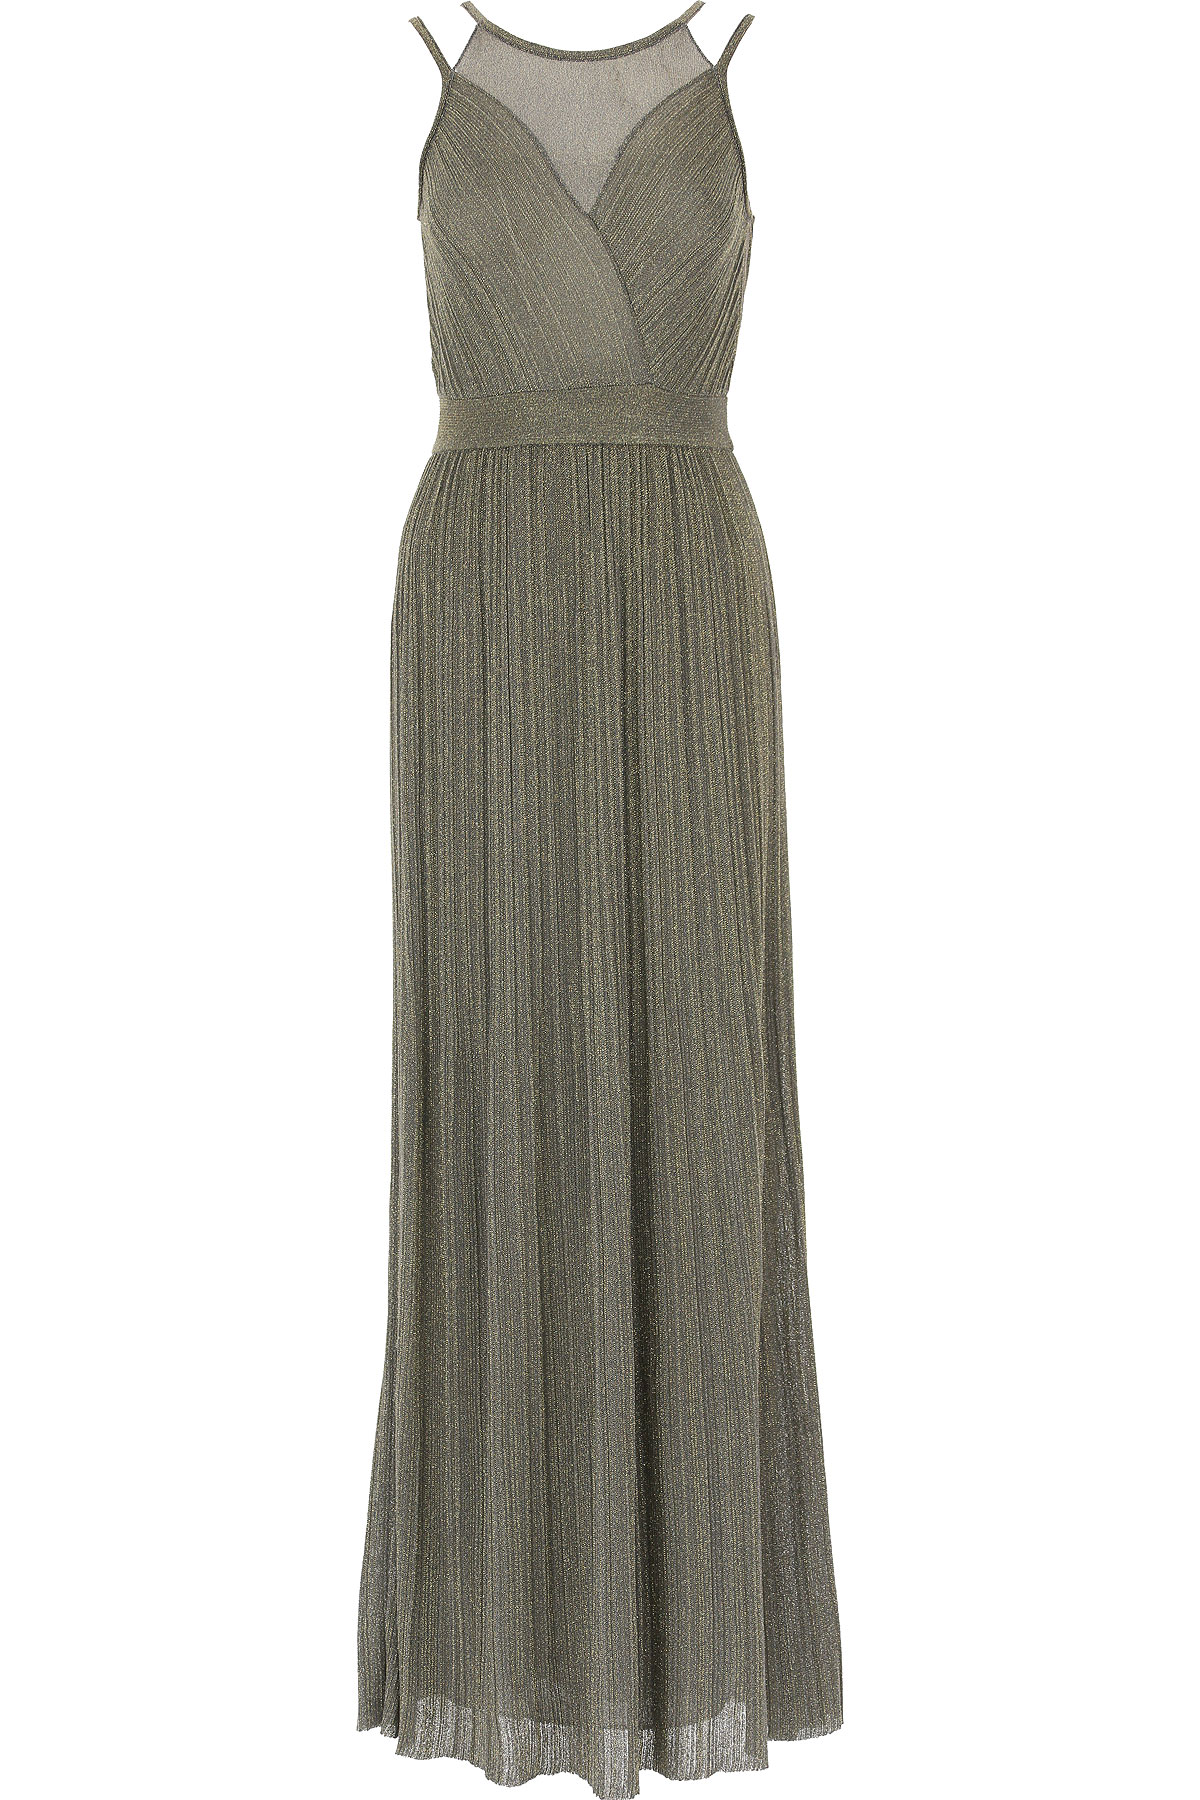 Image of Missoni Dress for Women, Evening Cocktail Party, Grey, Viscose, 2017, 4 6